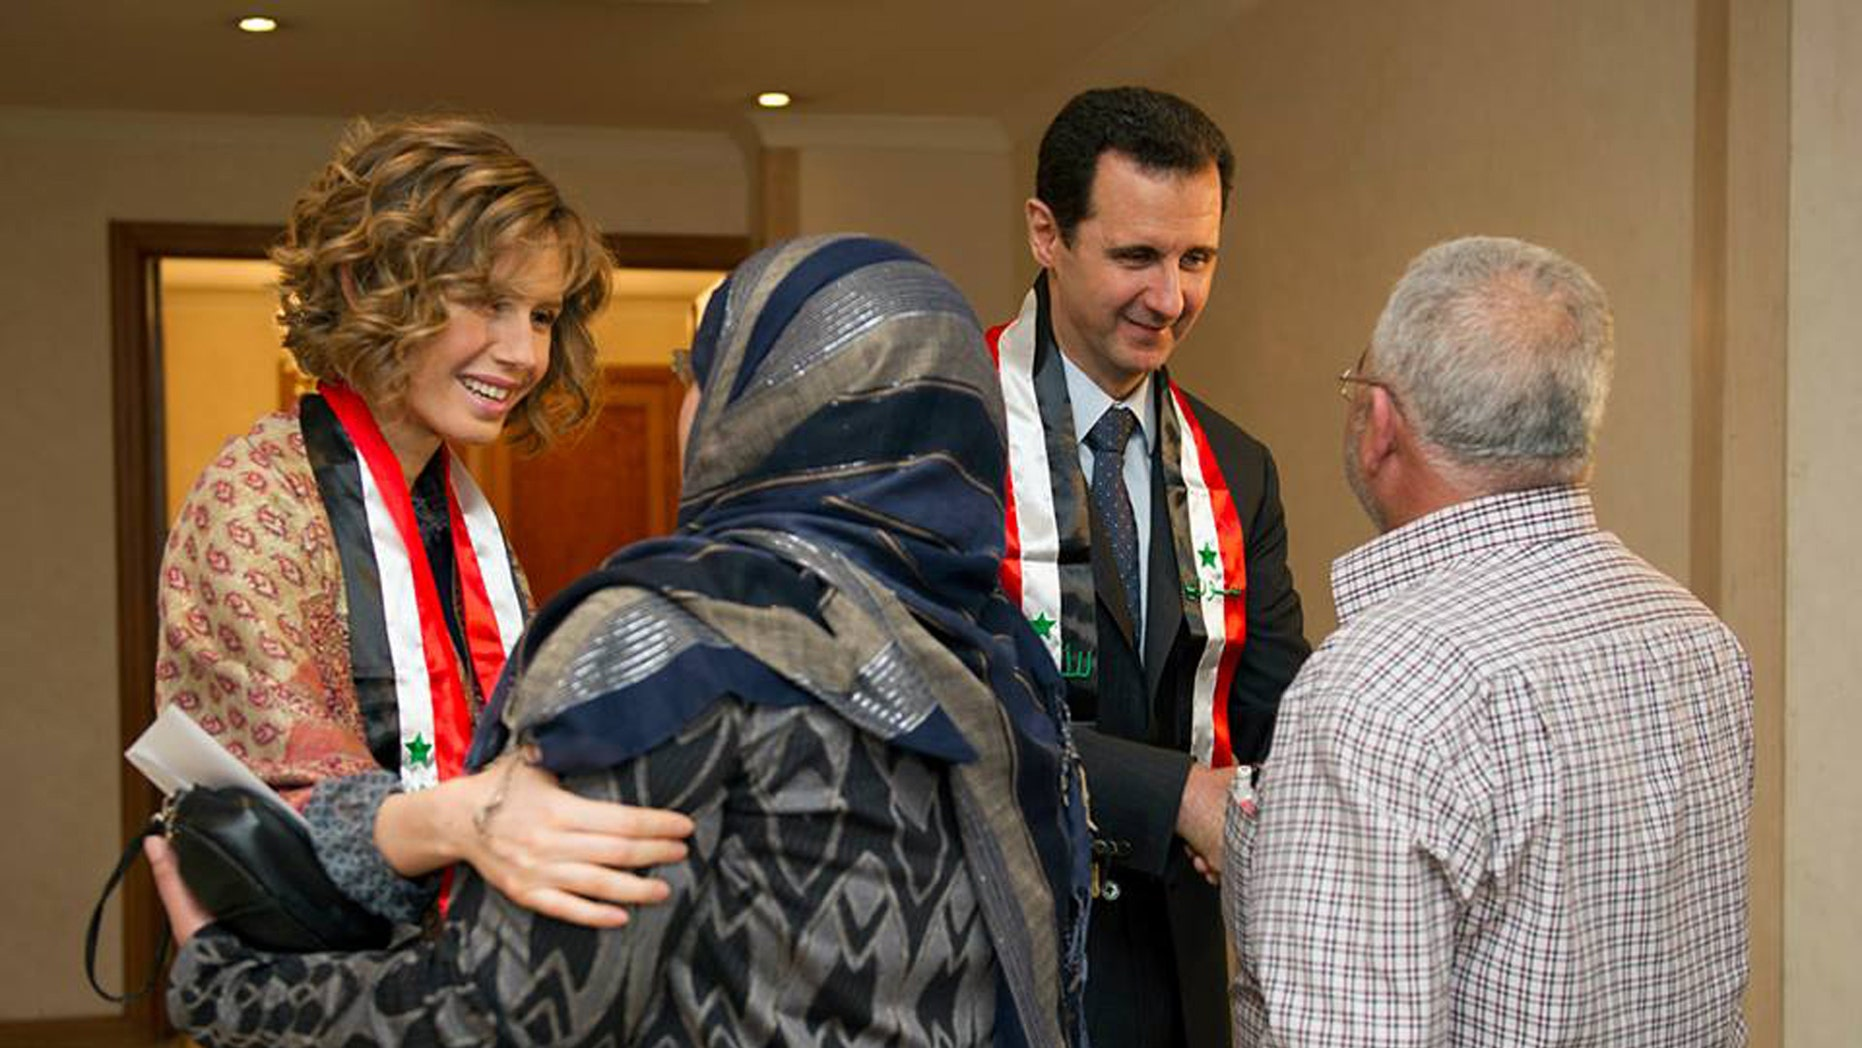 March 20, 2014: This photo posted on the official Facebook page of the Syrian Presidency, shows first lady Asma Assad, left background, and Syrian President Bashar Assad, right background, shaking hands with Syrian teachers in Damascus, Syria.